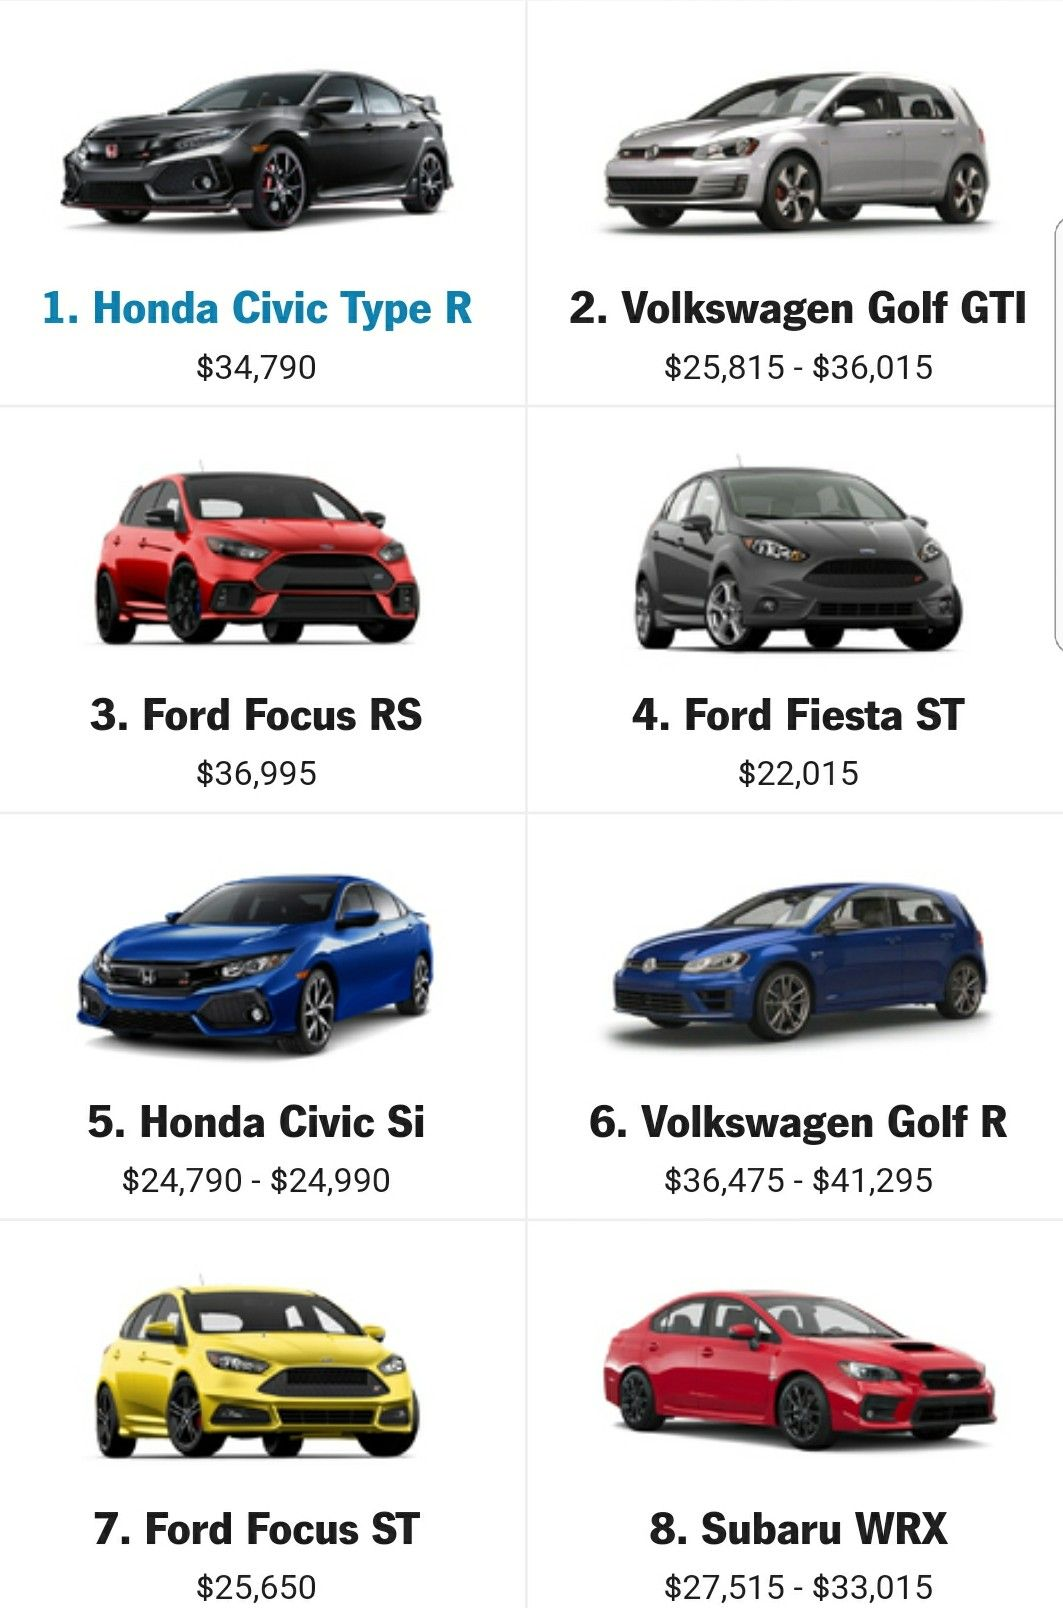 Pin By Dave Ortiz On Civic Honda Civic Type R Ford Focus St